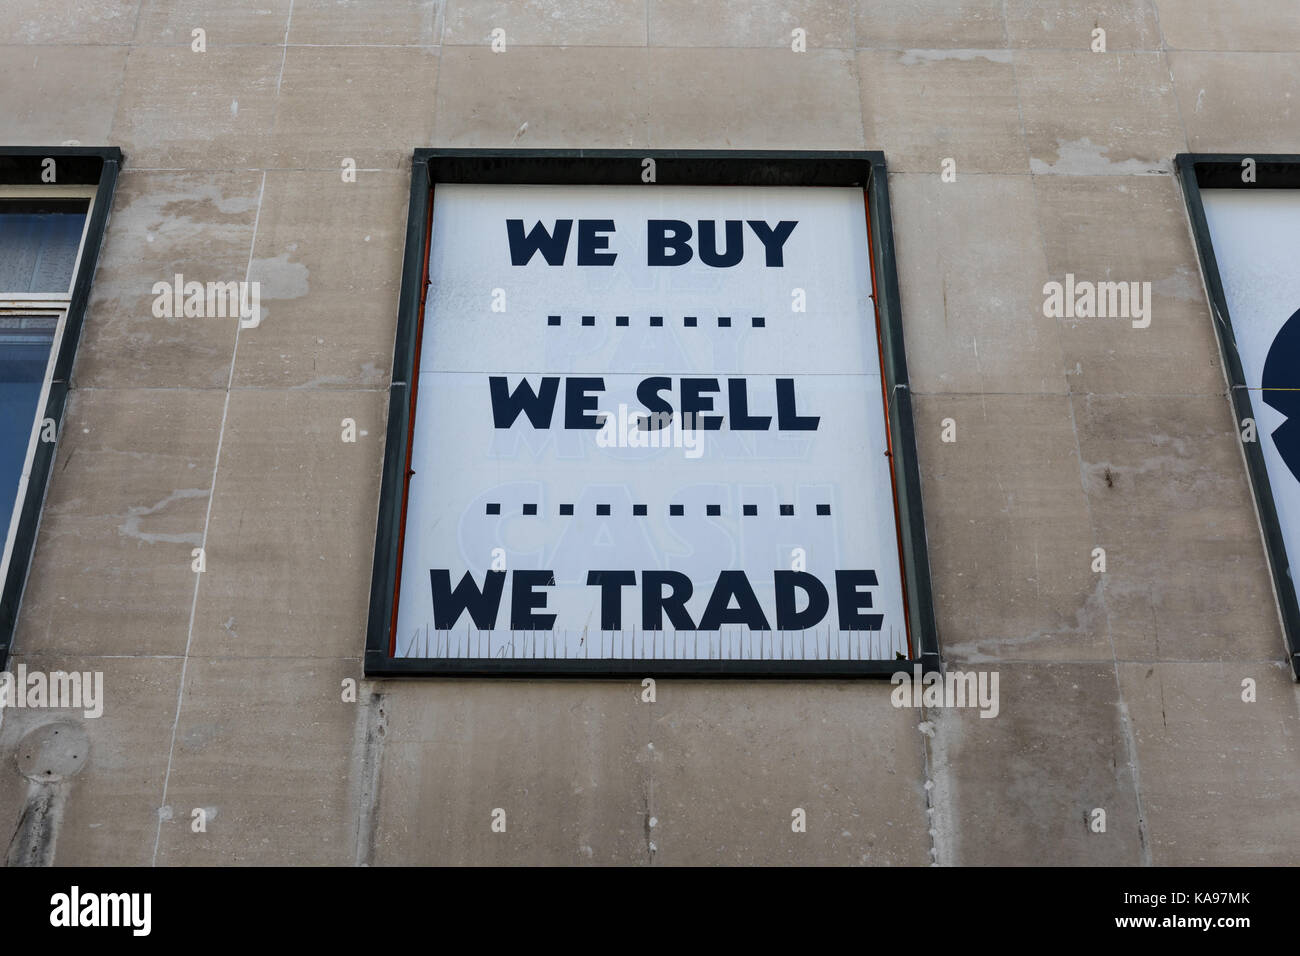 Commerce Trade Buy Sell Stock Photos & Commerce Trade Buy Sell Stock ...